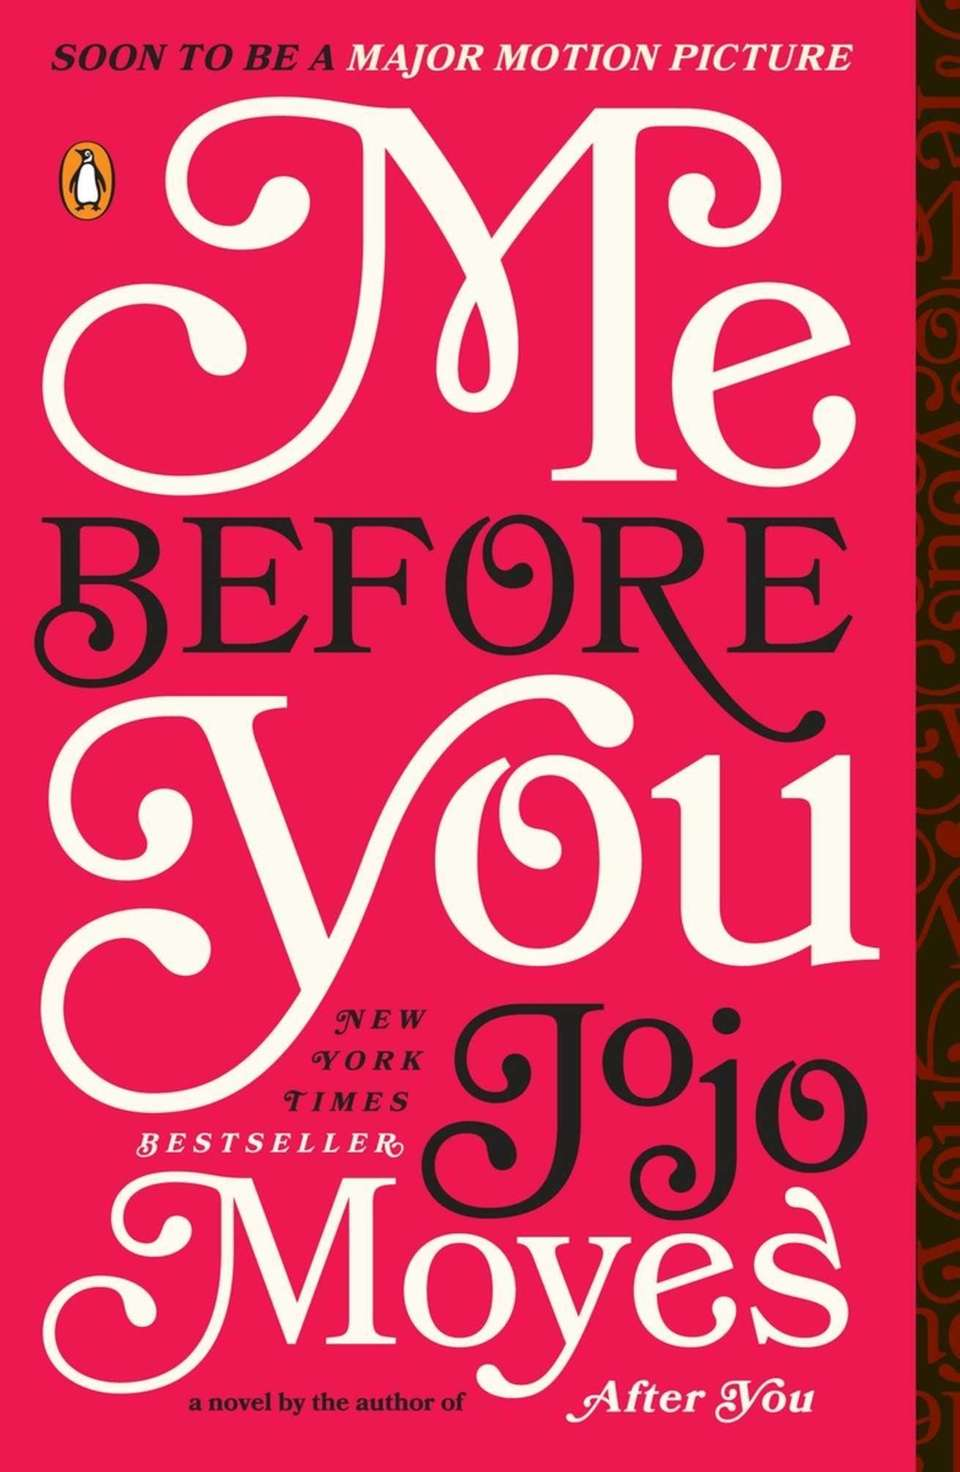 By Jojo Moyes, about a young woman who